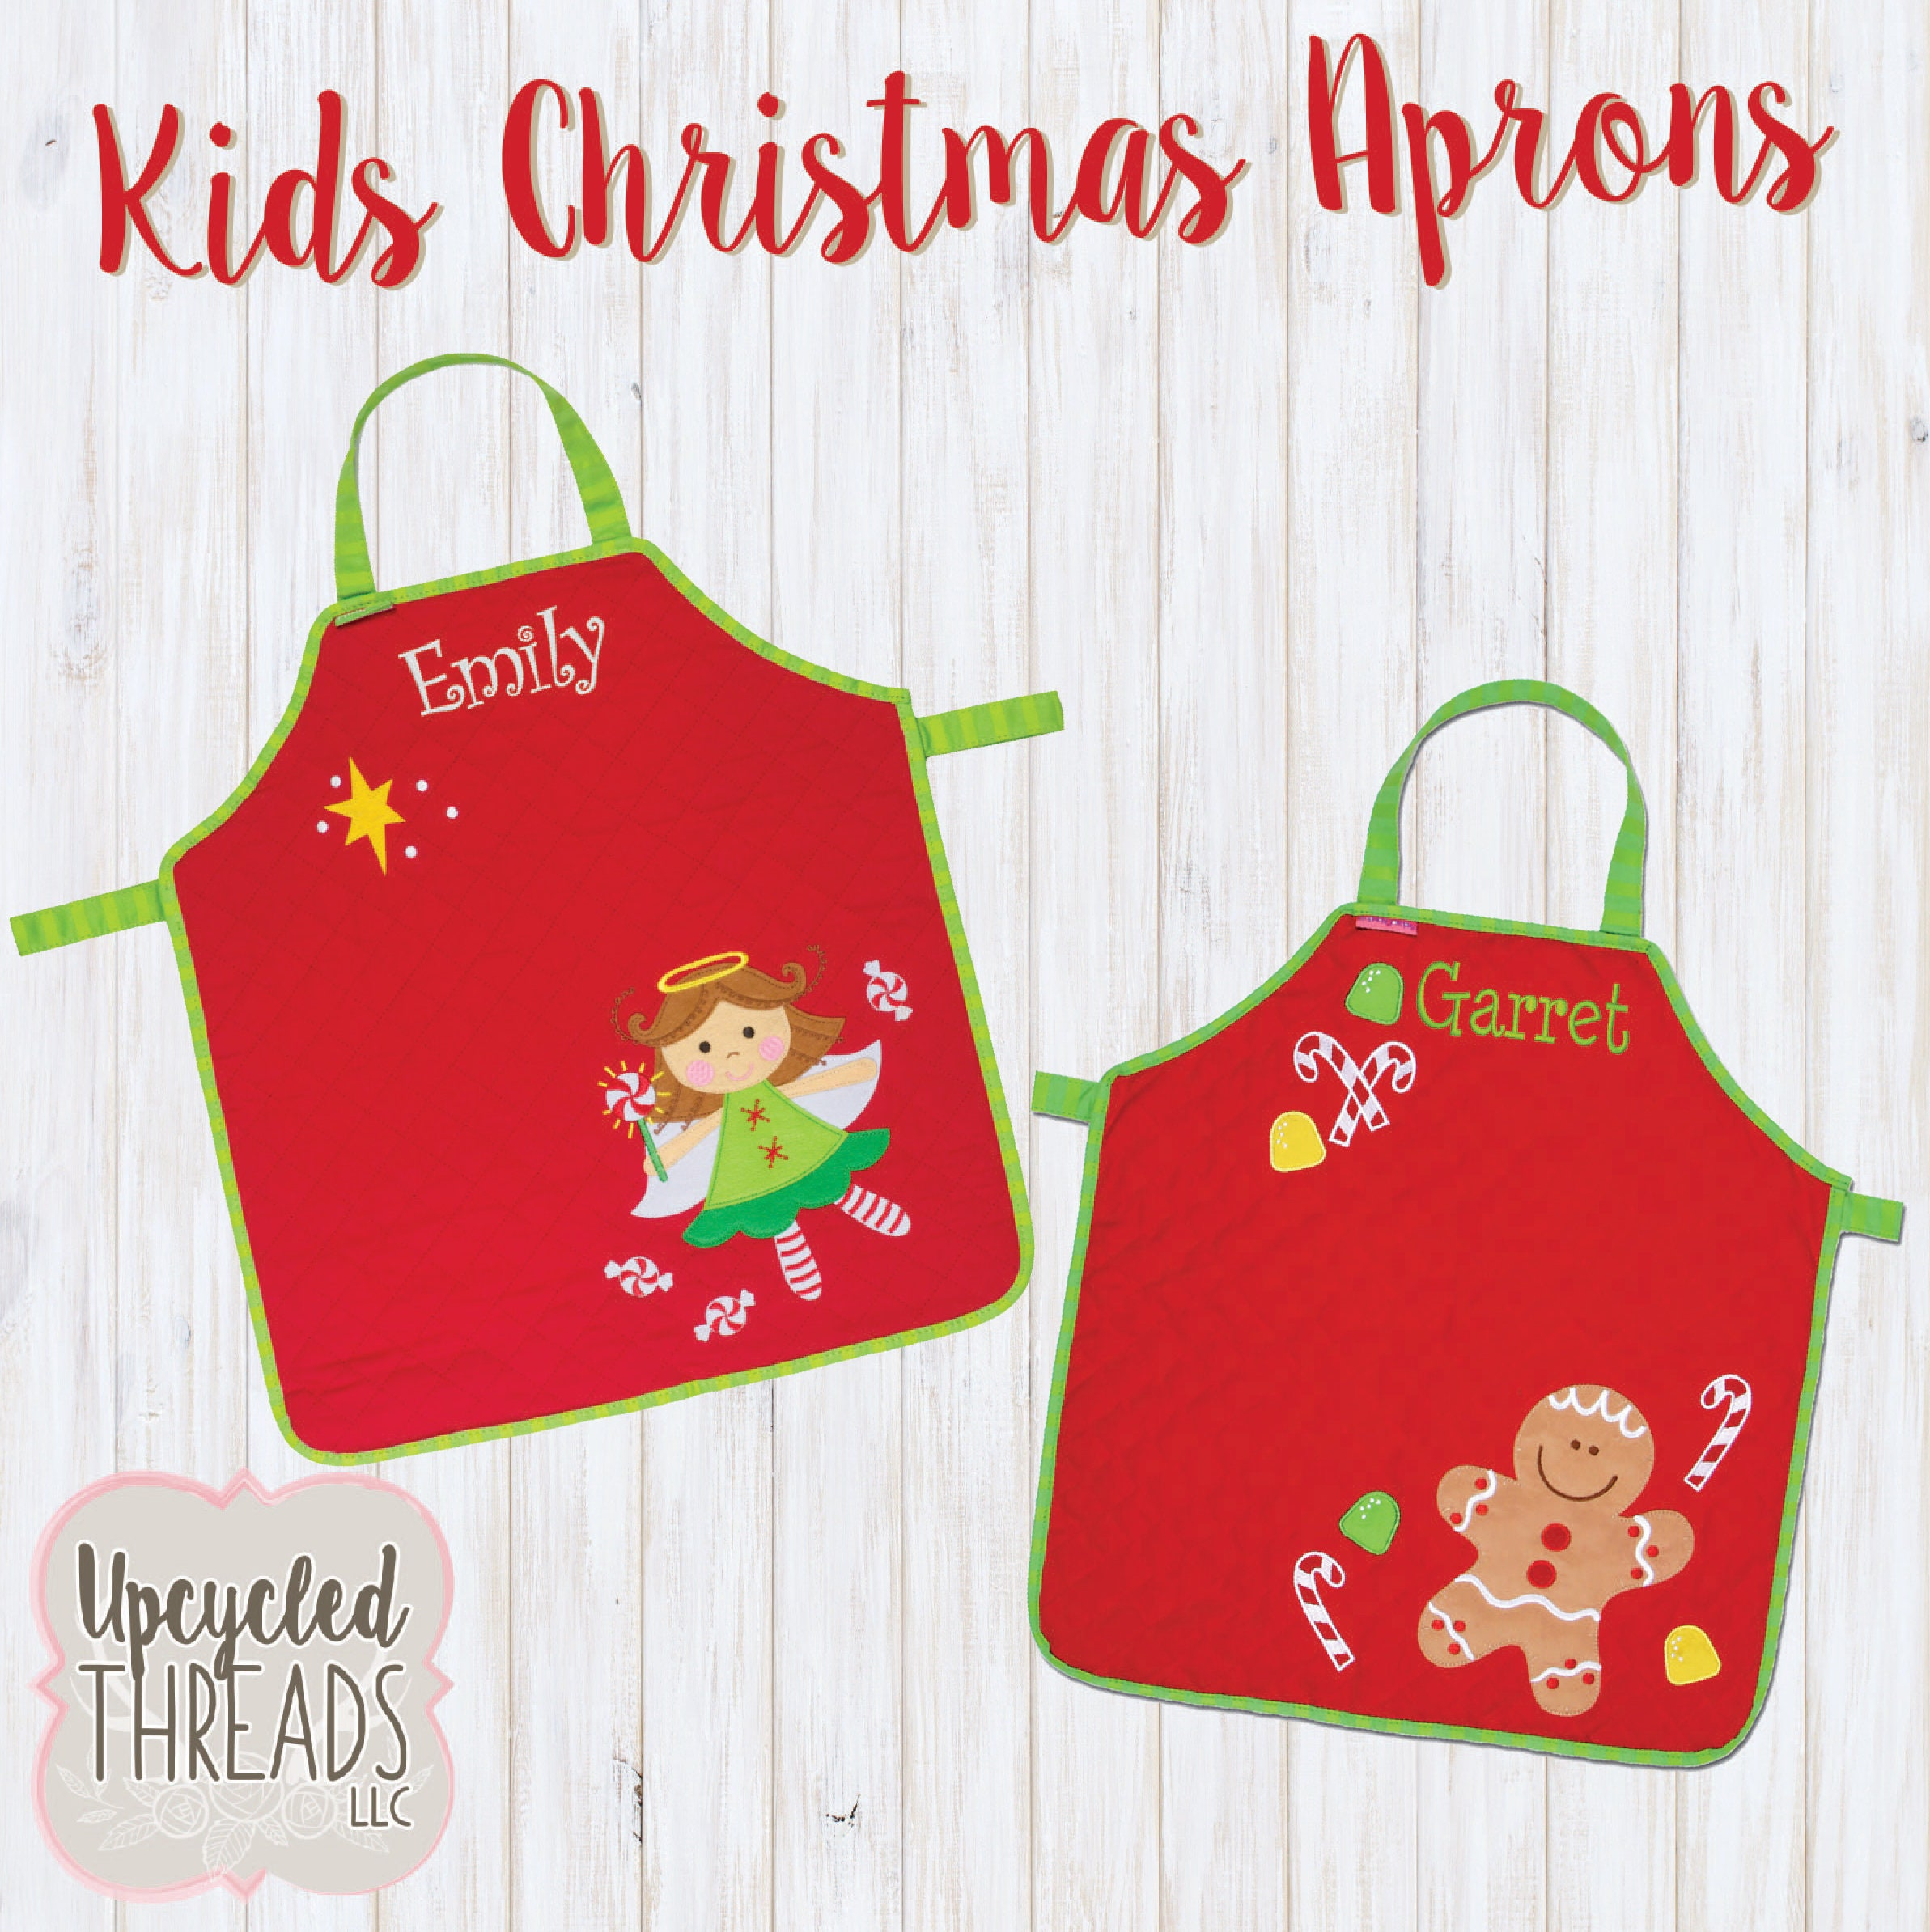 Kids Christmas Aprons Kids Baking Aprons Personalized Stephen Joseph Holiday Cooking Aprons Christmas Gift For Kids Girl Boy Apron